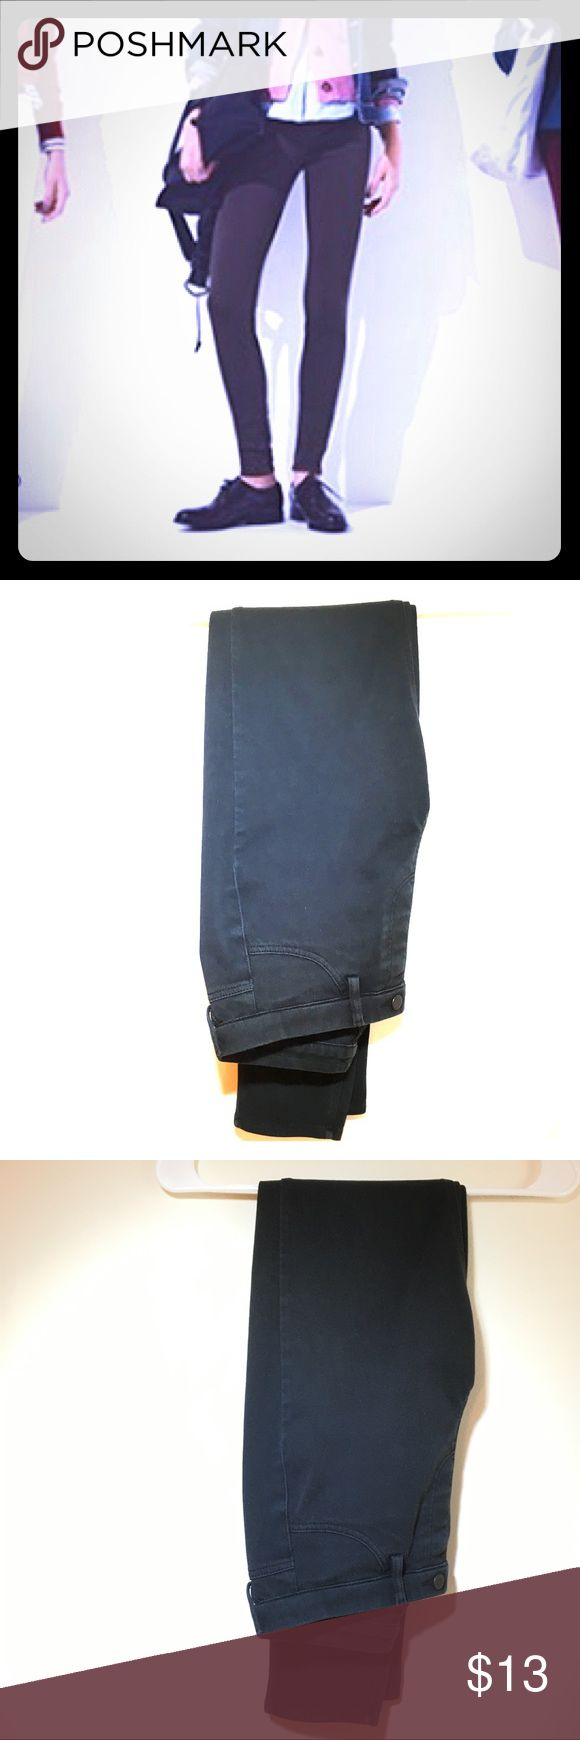 Uniqlo Leggings Pants - Black Stretchy leggings style pants. Elastic waistband - super comfy! Button detail and belt loops allow for dressing up. Very good used condition. (Last photo from Uniqlo.) Uniqlo Pants